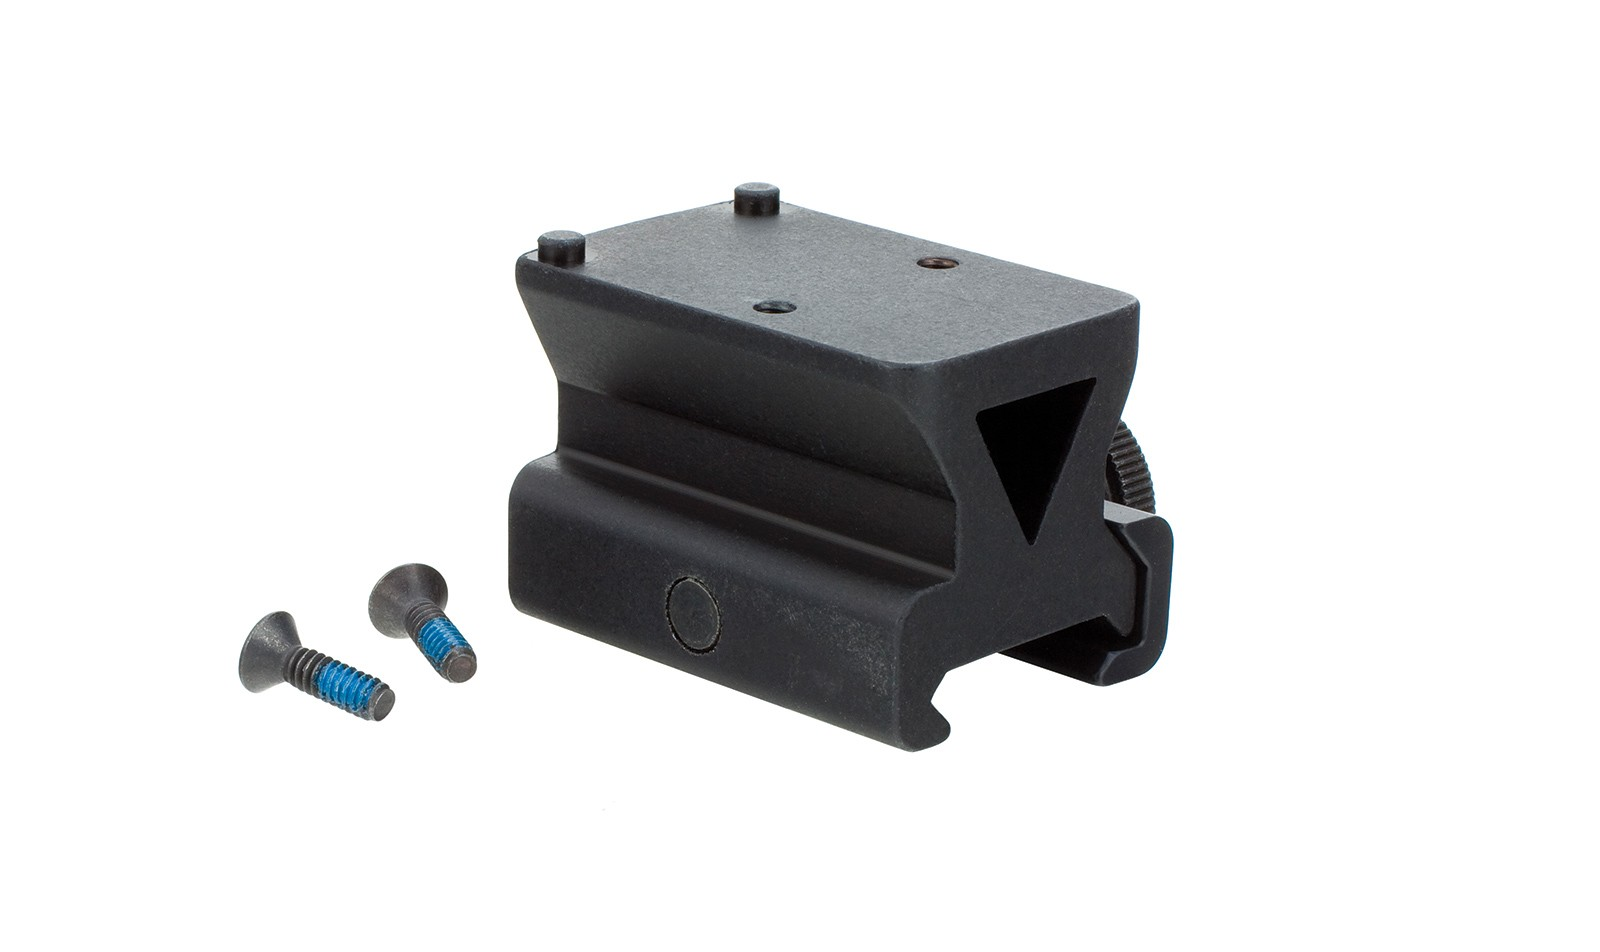 Trijicon® Picatinny Rail Mount Adapter for Trijicon RMR®/SRO® - Colt Thumbscrew 1/3 Lower Cowitness